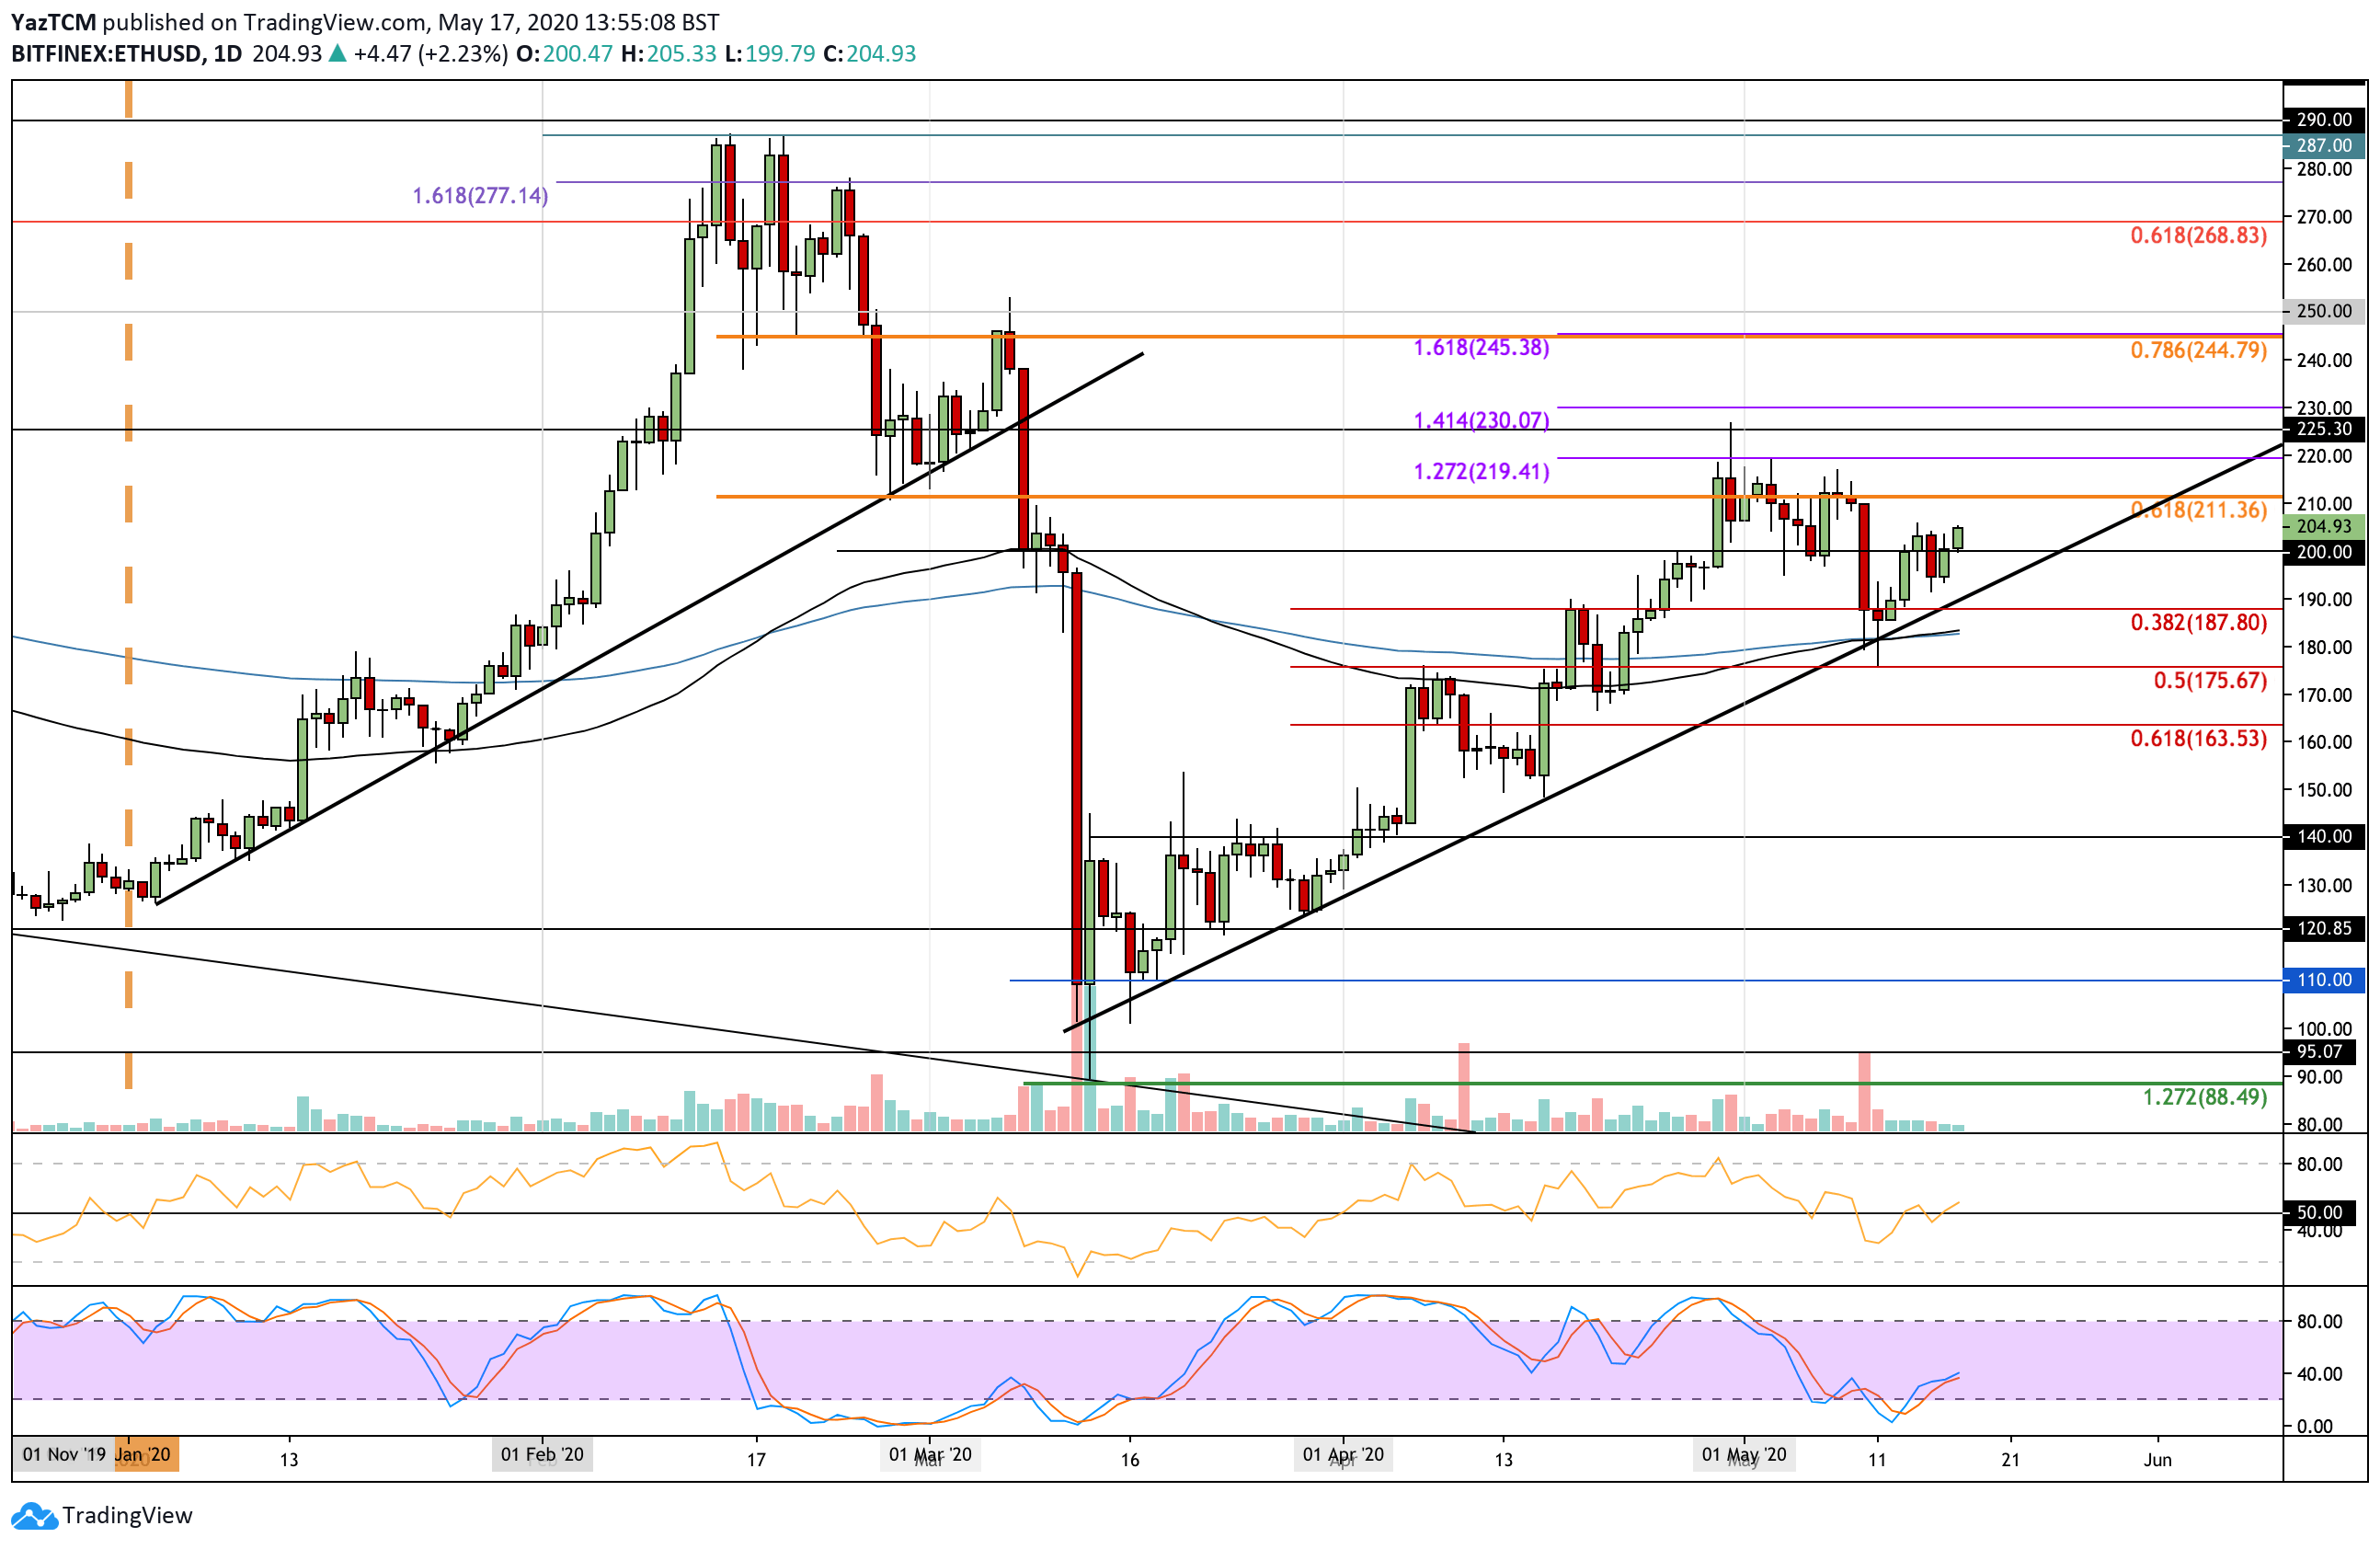 "ethusd-may17 ""width ="" 2588 ""top ="" 1684 ""srcset ="" https://cryptopotato.com/wp-content/uploads/2020/05/ethusd-may17.png 2588w, https://cryptopotato.com/ wp-content / uploads / 2020/05 / ethusd-may17-300x195.png 300w, https://cryptopotato.com/wp-content/uploads/2020/05/ethusd-may17-1024x666.png 1024w, https: // cryptopotato.com/wp-content/uploads/2020/05/ethusd-may17-768x500.png 768w, https://cryptopotato.com/wp-content/uploads/2020/05/ethusd-may17-1536x999.png 1536w, https://cryptopotato.com/wp-content/uploads/2020/05/ethusd-may17-2048x1333.png 2048w, https://cryptopotato.com/wp-content/uploads/2020/05/ethusd-may17-50x33 .png 50w ""data-lazy-size ="" (max-width: 2588px) 100vw, 2588px ""src ="" https://cryptopotato.com/wp-content/uploads/2020/05/ethusd-may17.png ""/ ><noscript><img class="